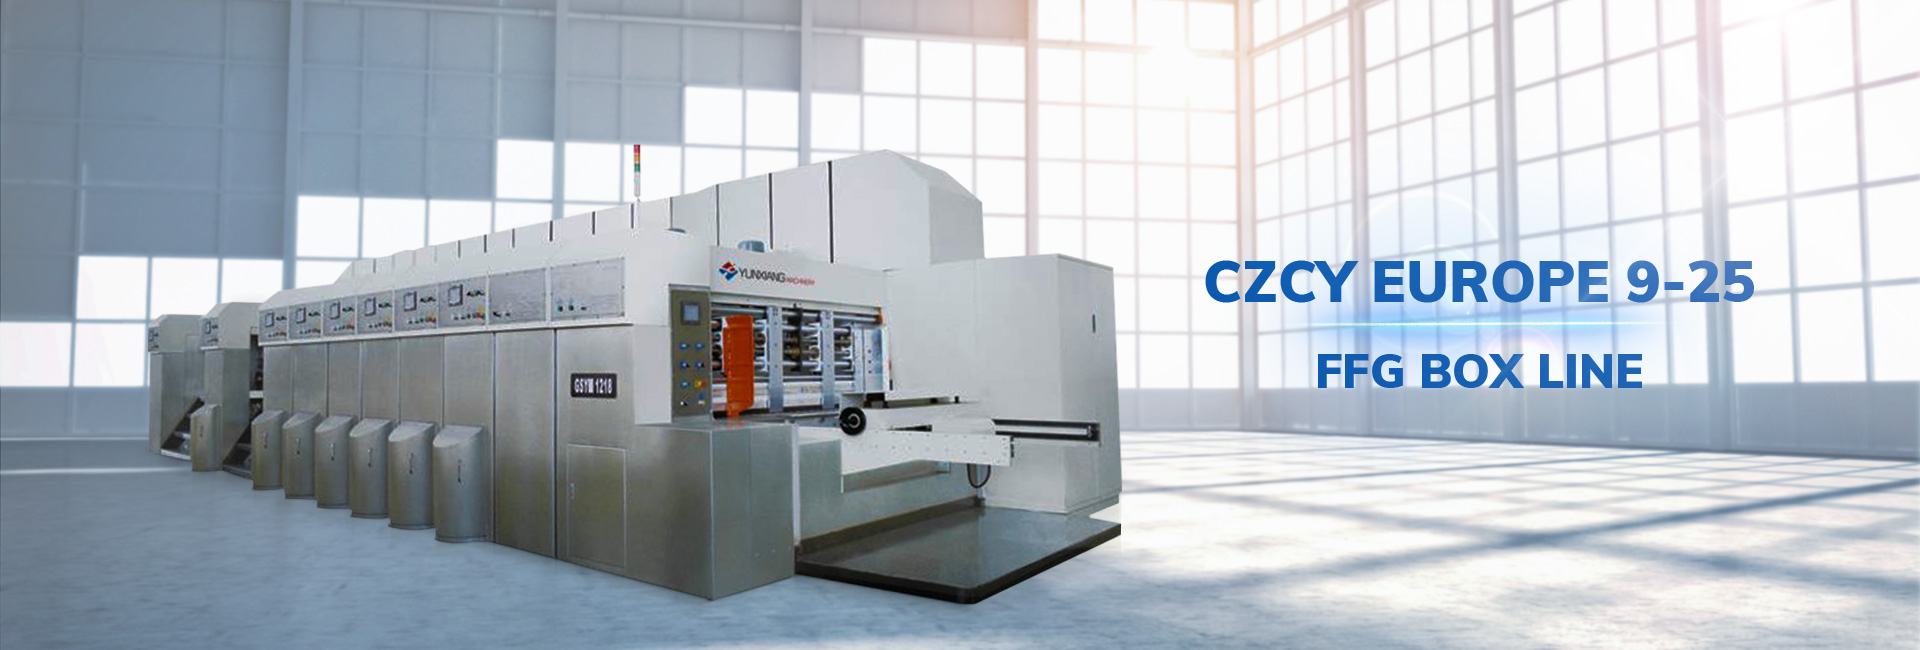 Cangzhou Chengyi Carton makinarya Co., Ltd